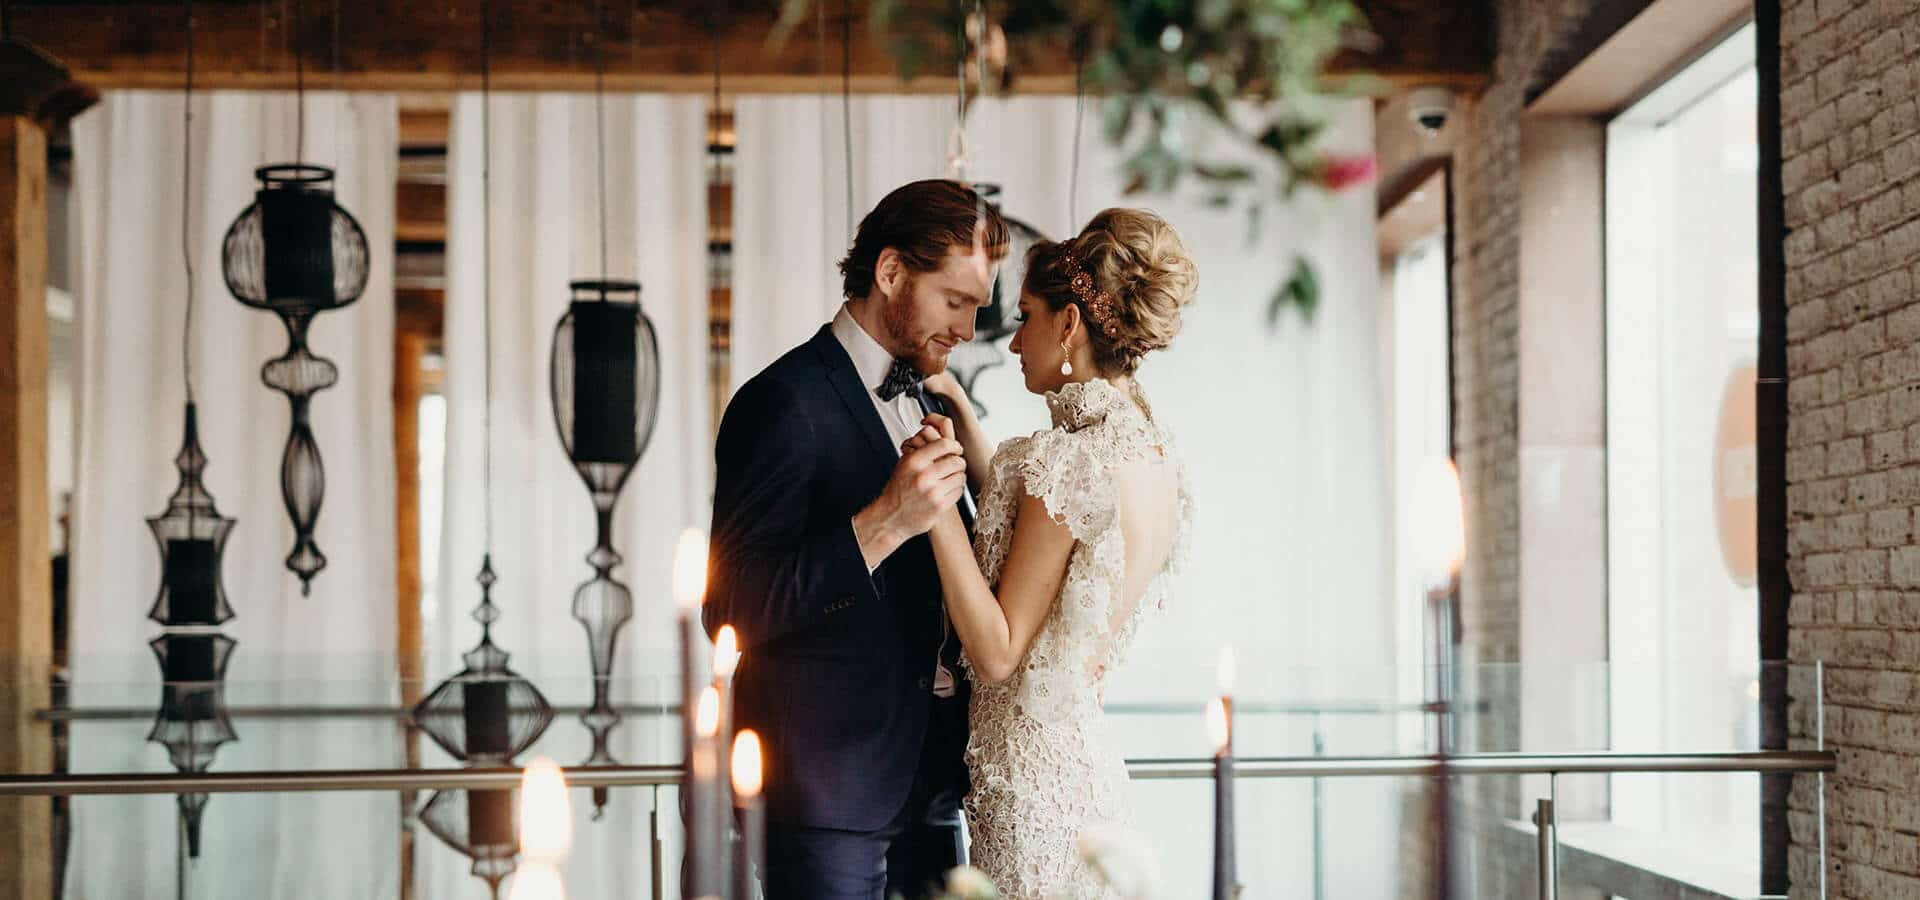 Hero image for Styled Shoot: A Celestial Love in the City